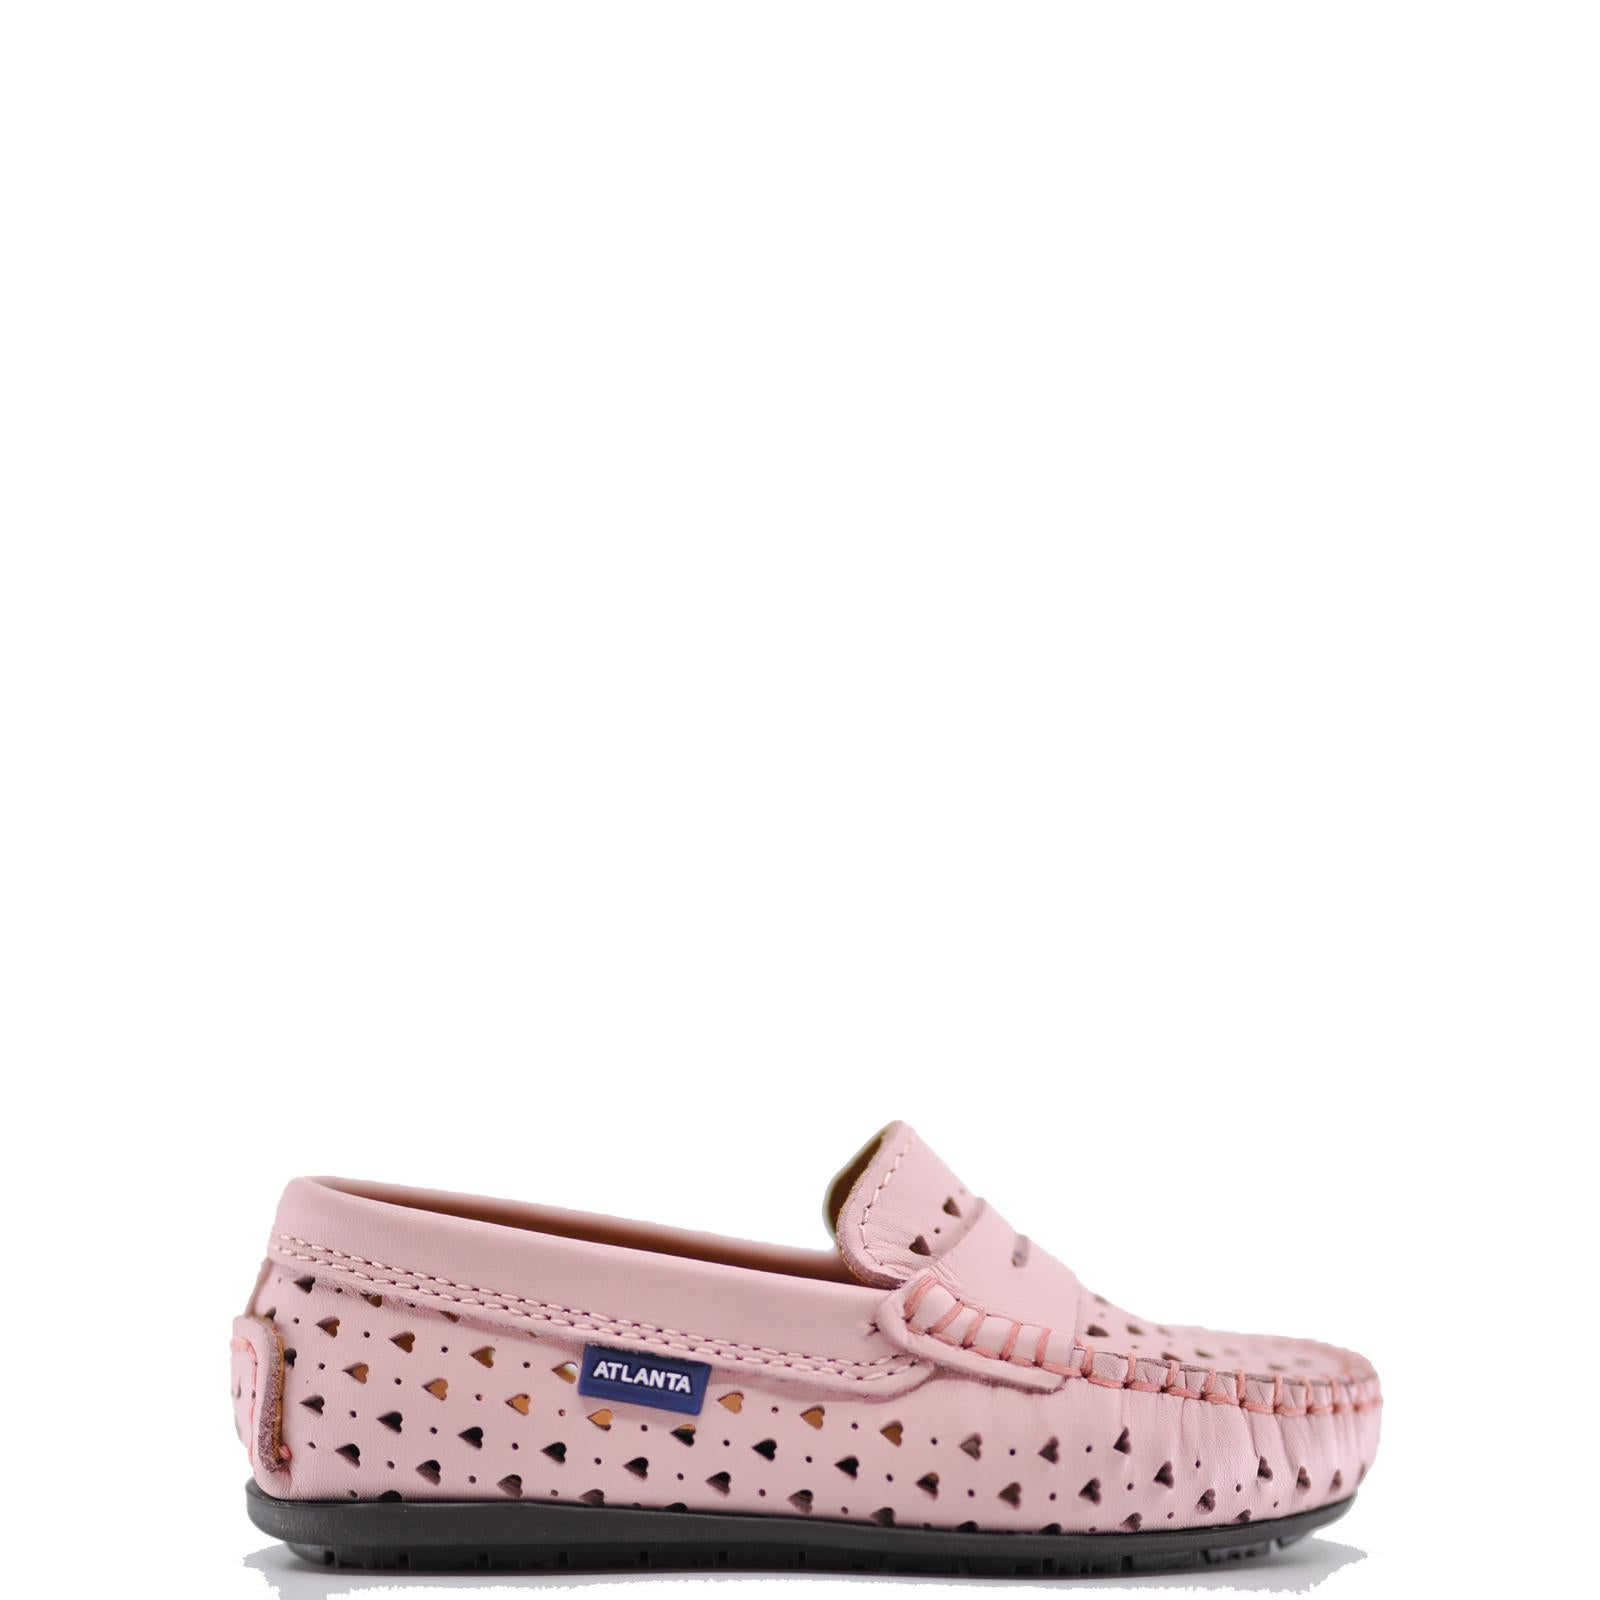 Atlanta Mocassin Light Pink Heart Penny Loafer-Tassel Children Shoes